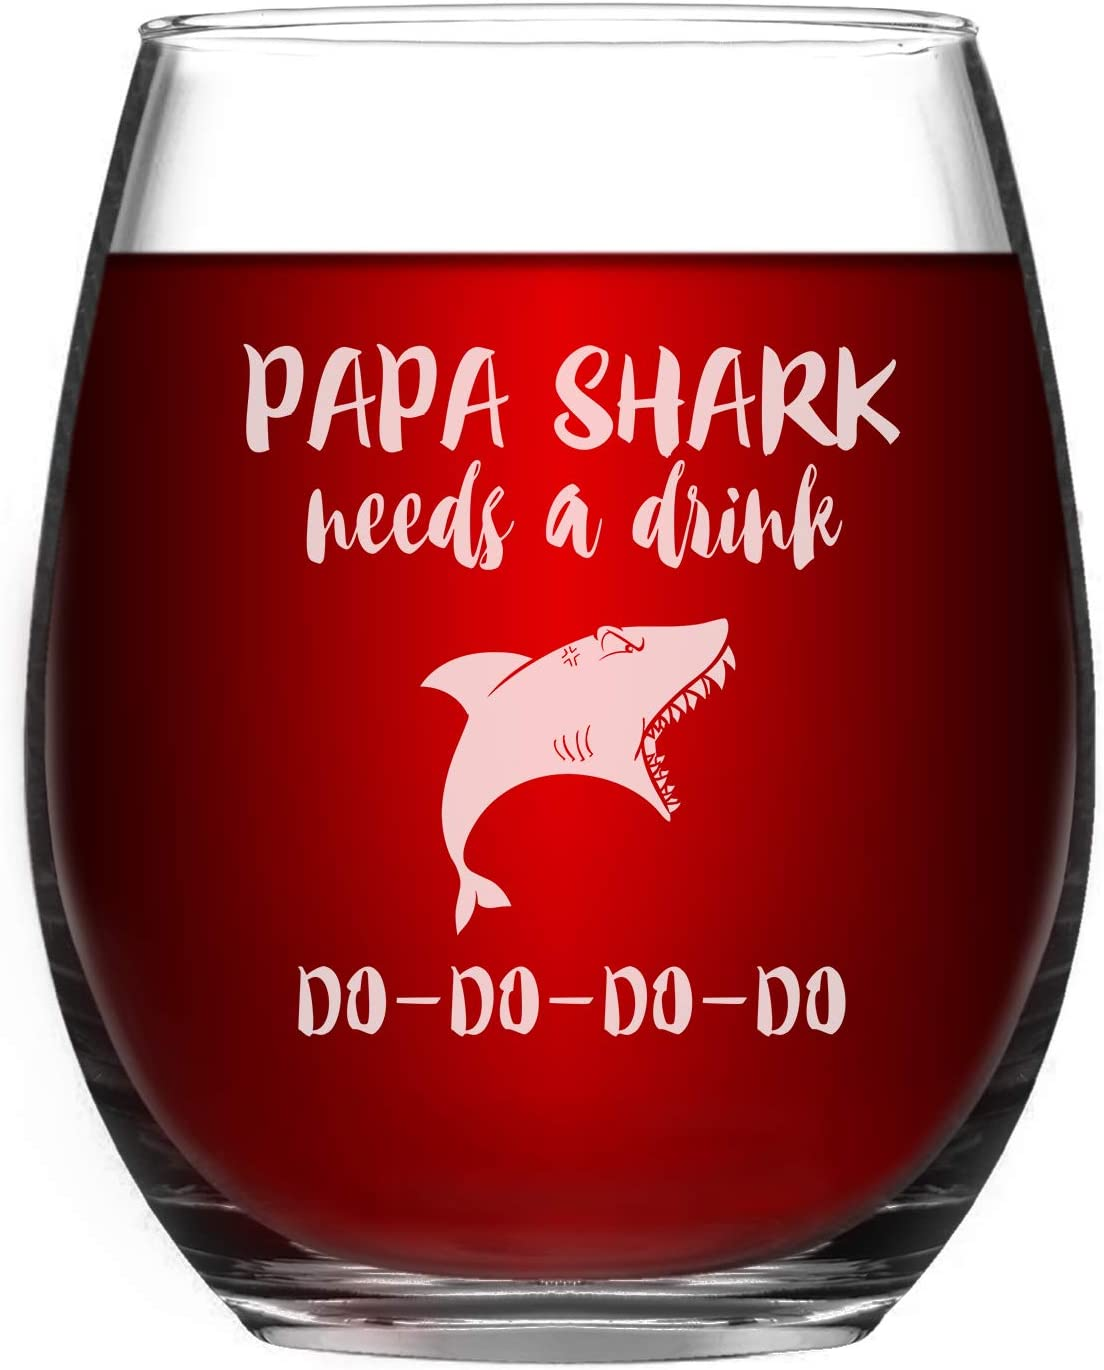 Papa Shark Needs a Drink Do Do Wine Glass Fathers Day Gifts for Dad Father from Daughter Son Funny Shark Gifts for Dad Papa Friends Shark Lovers Men Grandpa Dad 15Oz